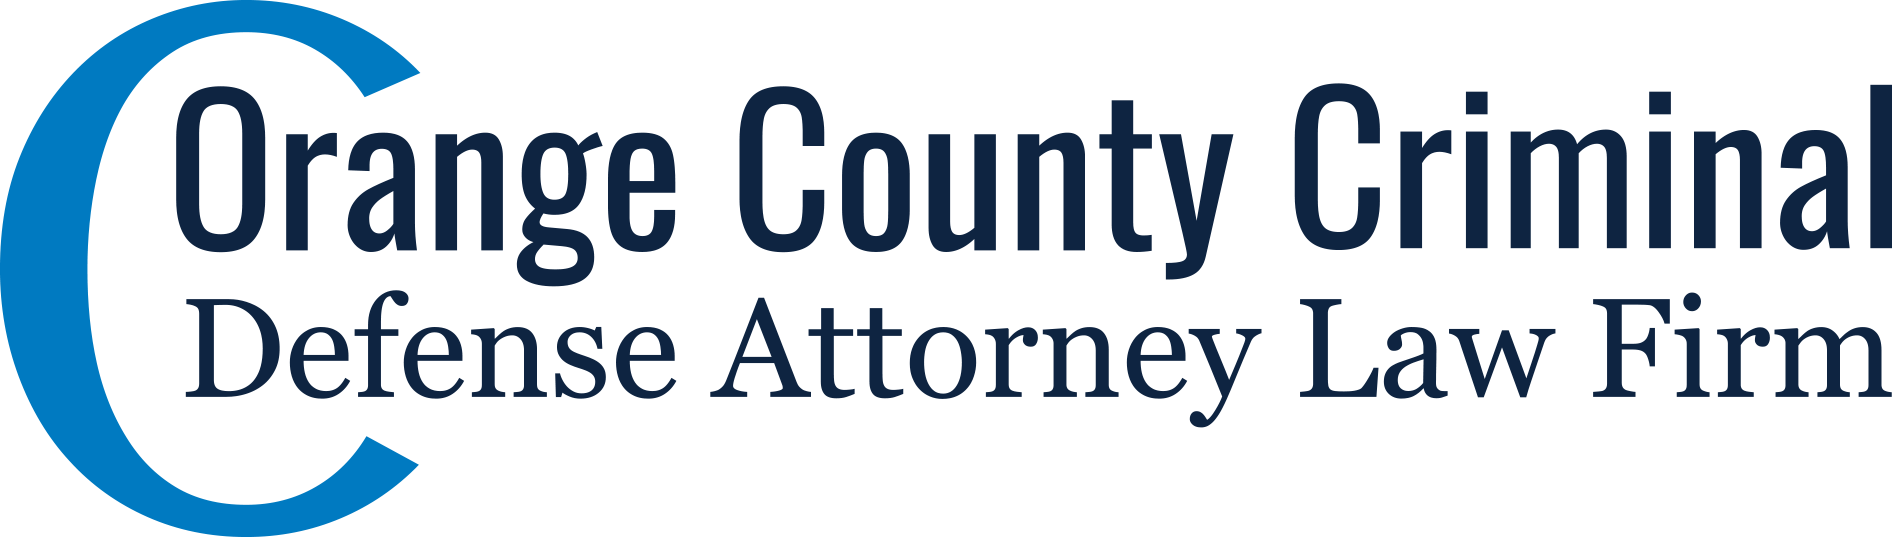 Search Cochise County Public Property Records Online